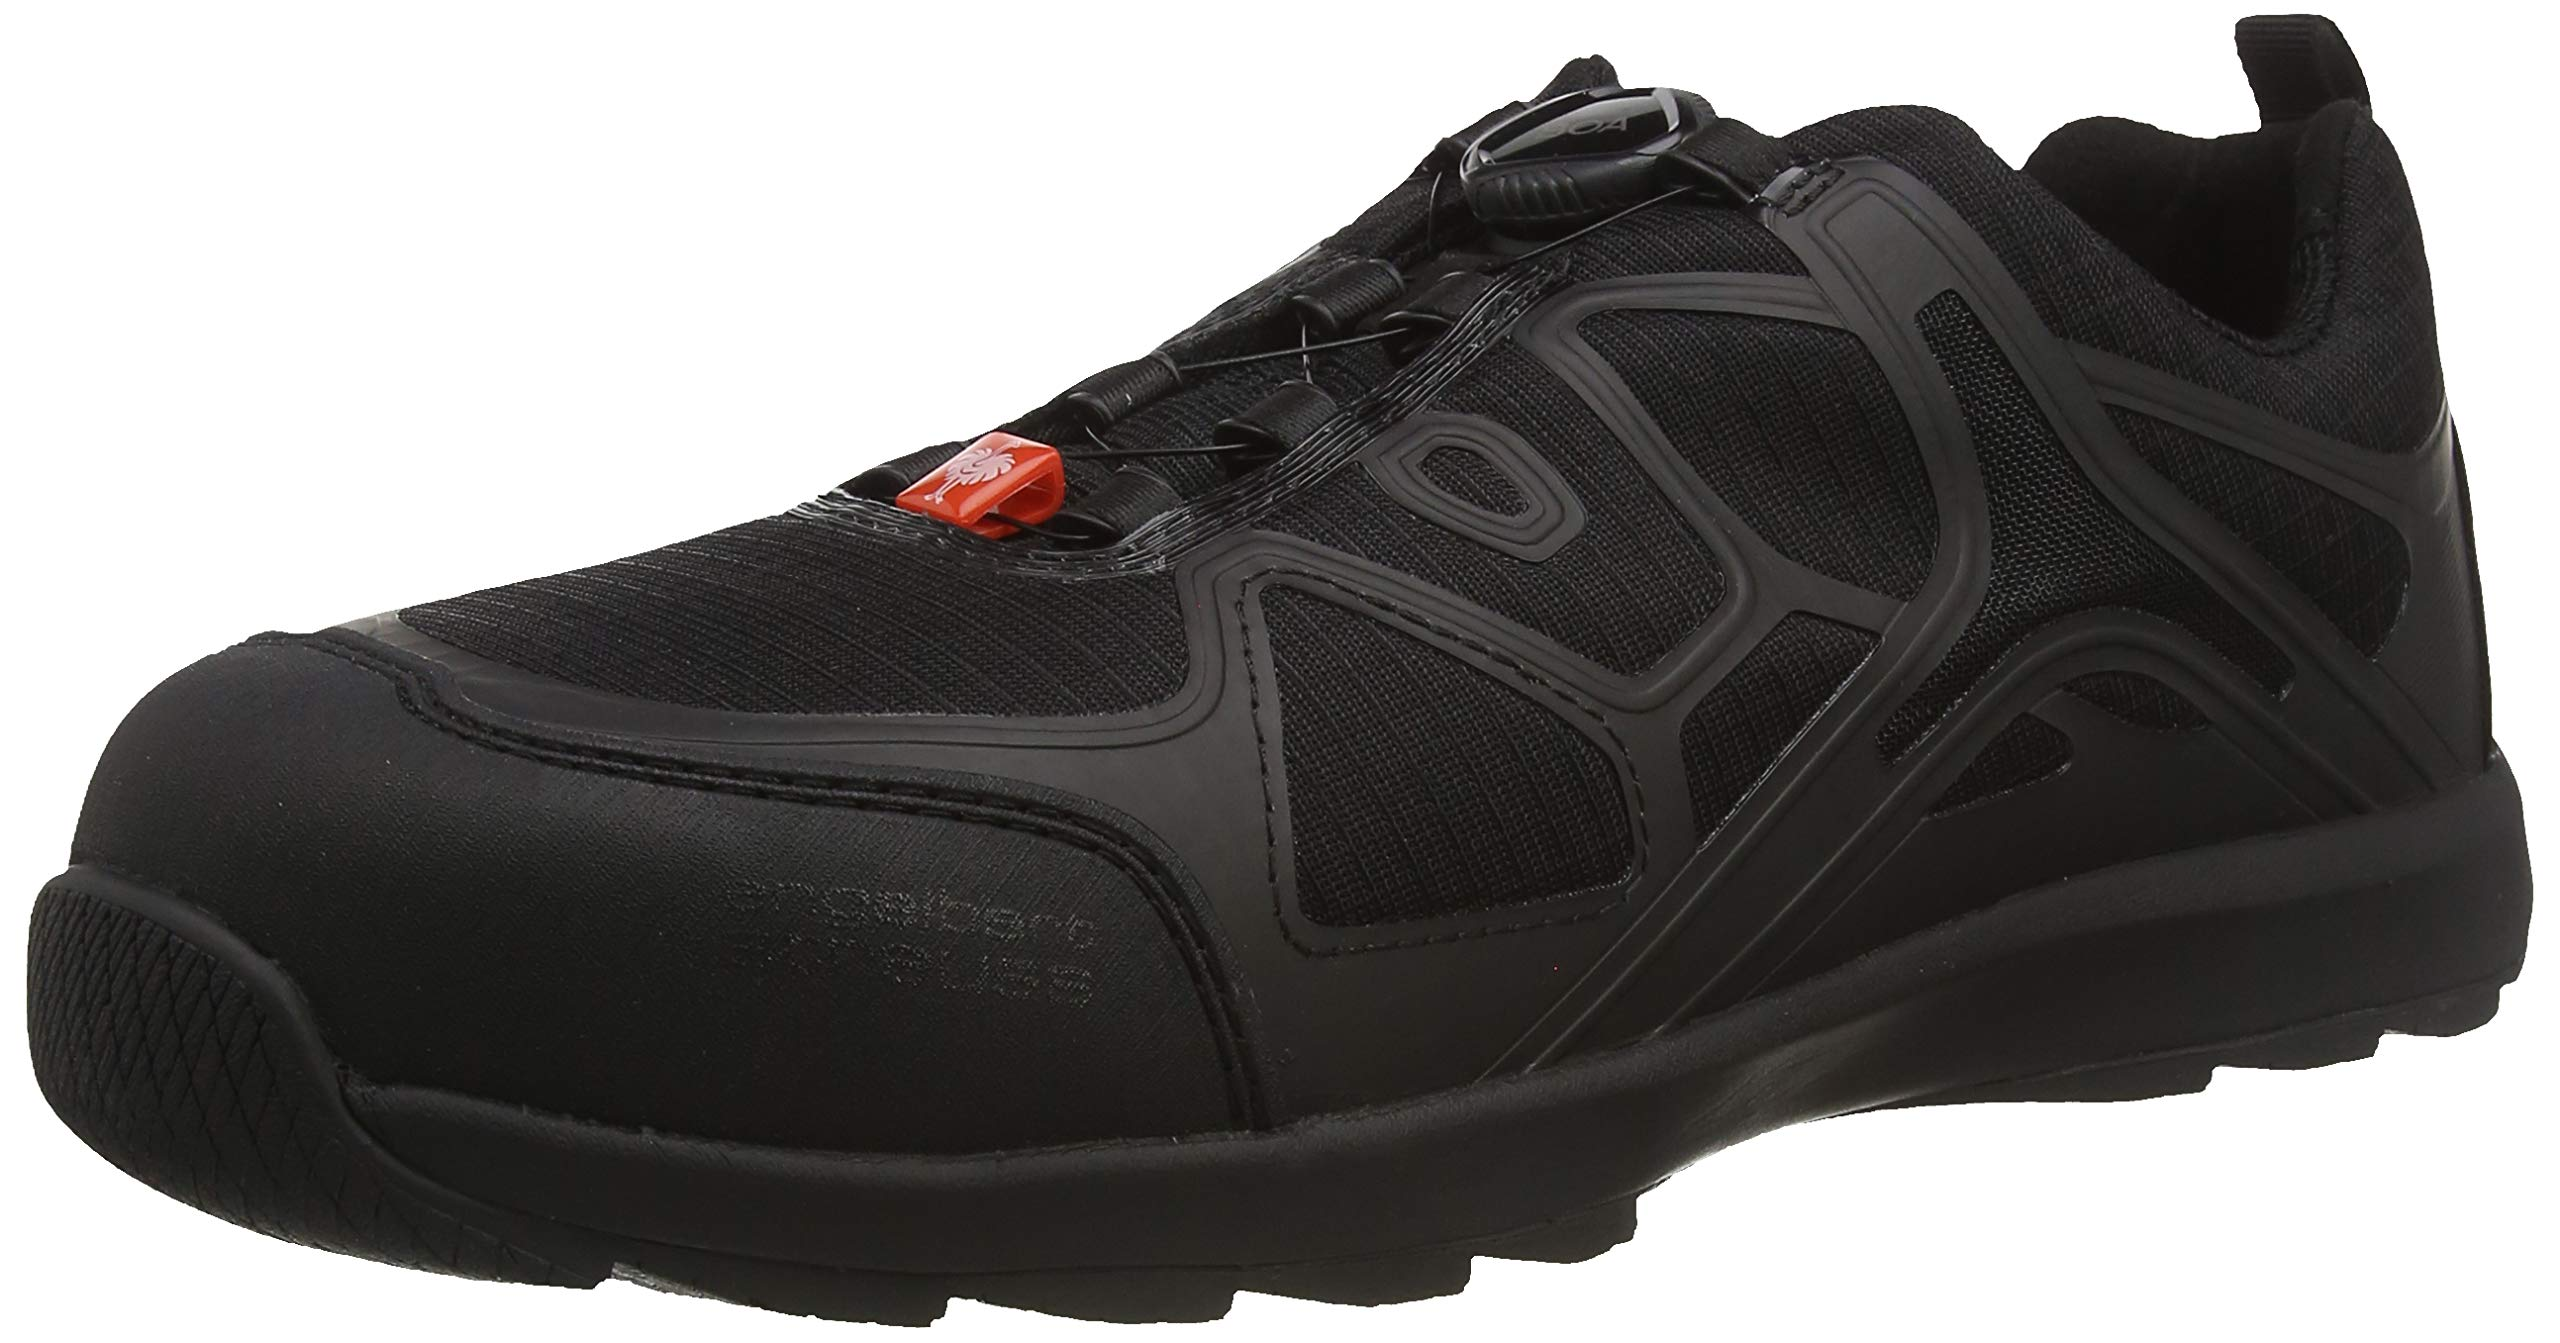 Baham S1 SRA Safety Trainers BOA System